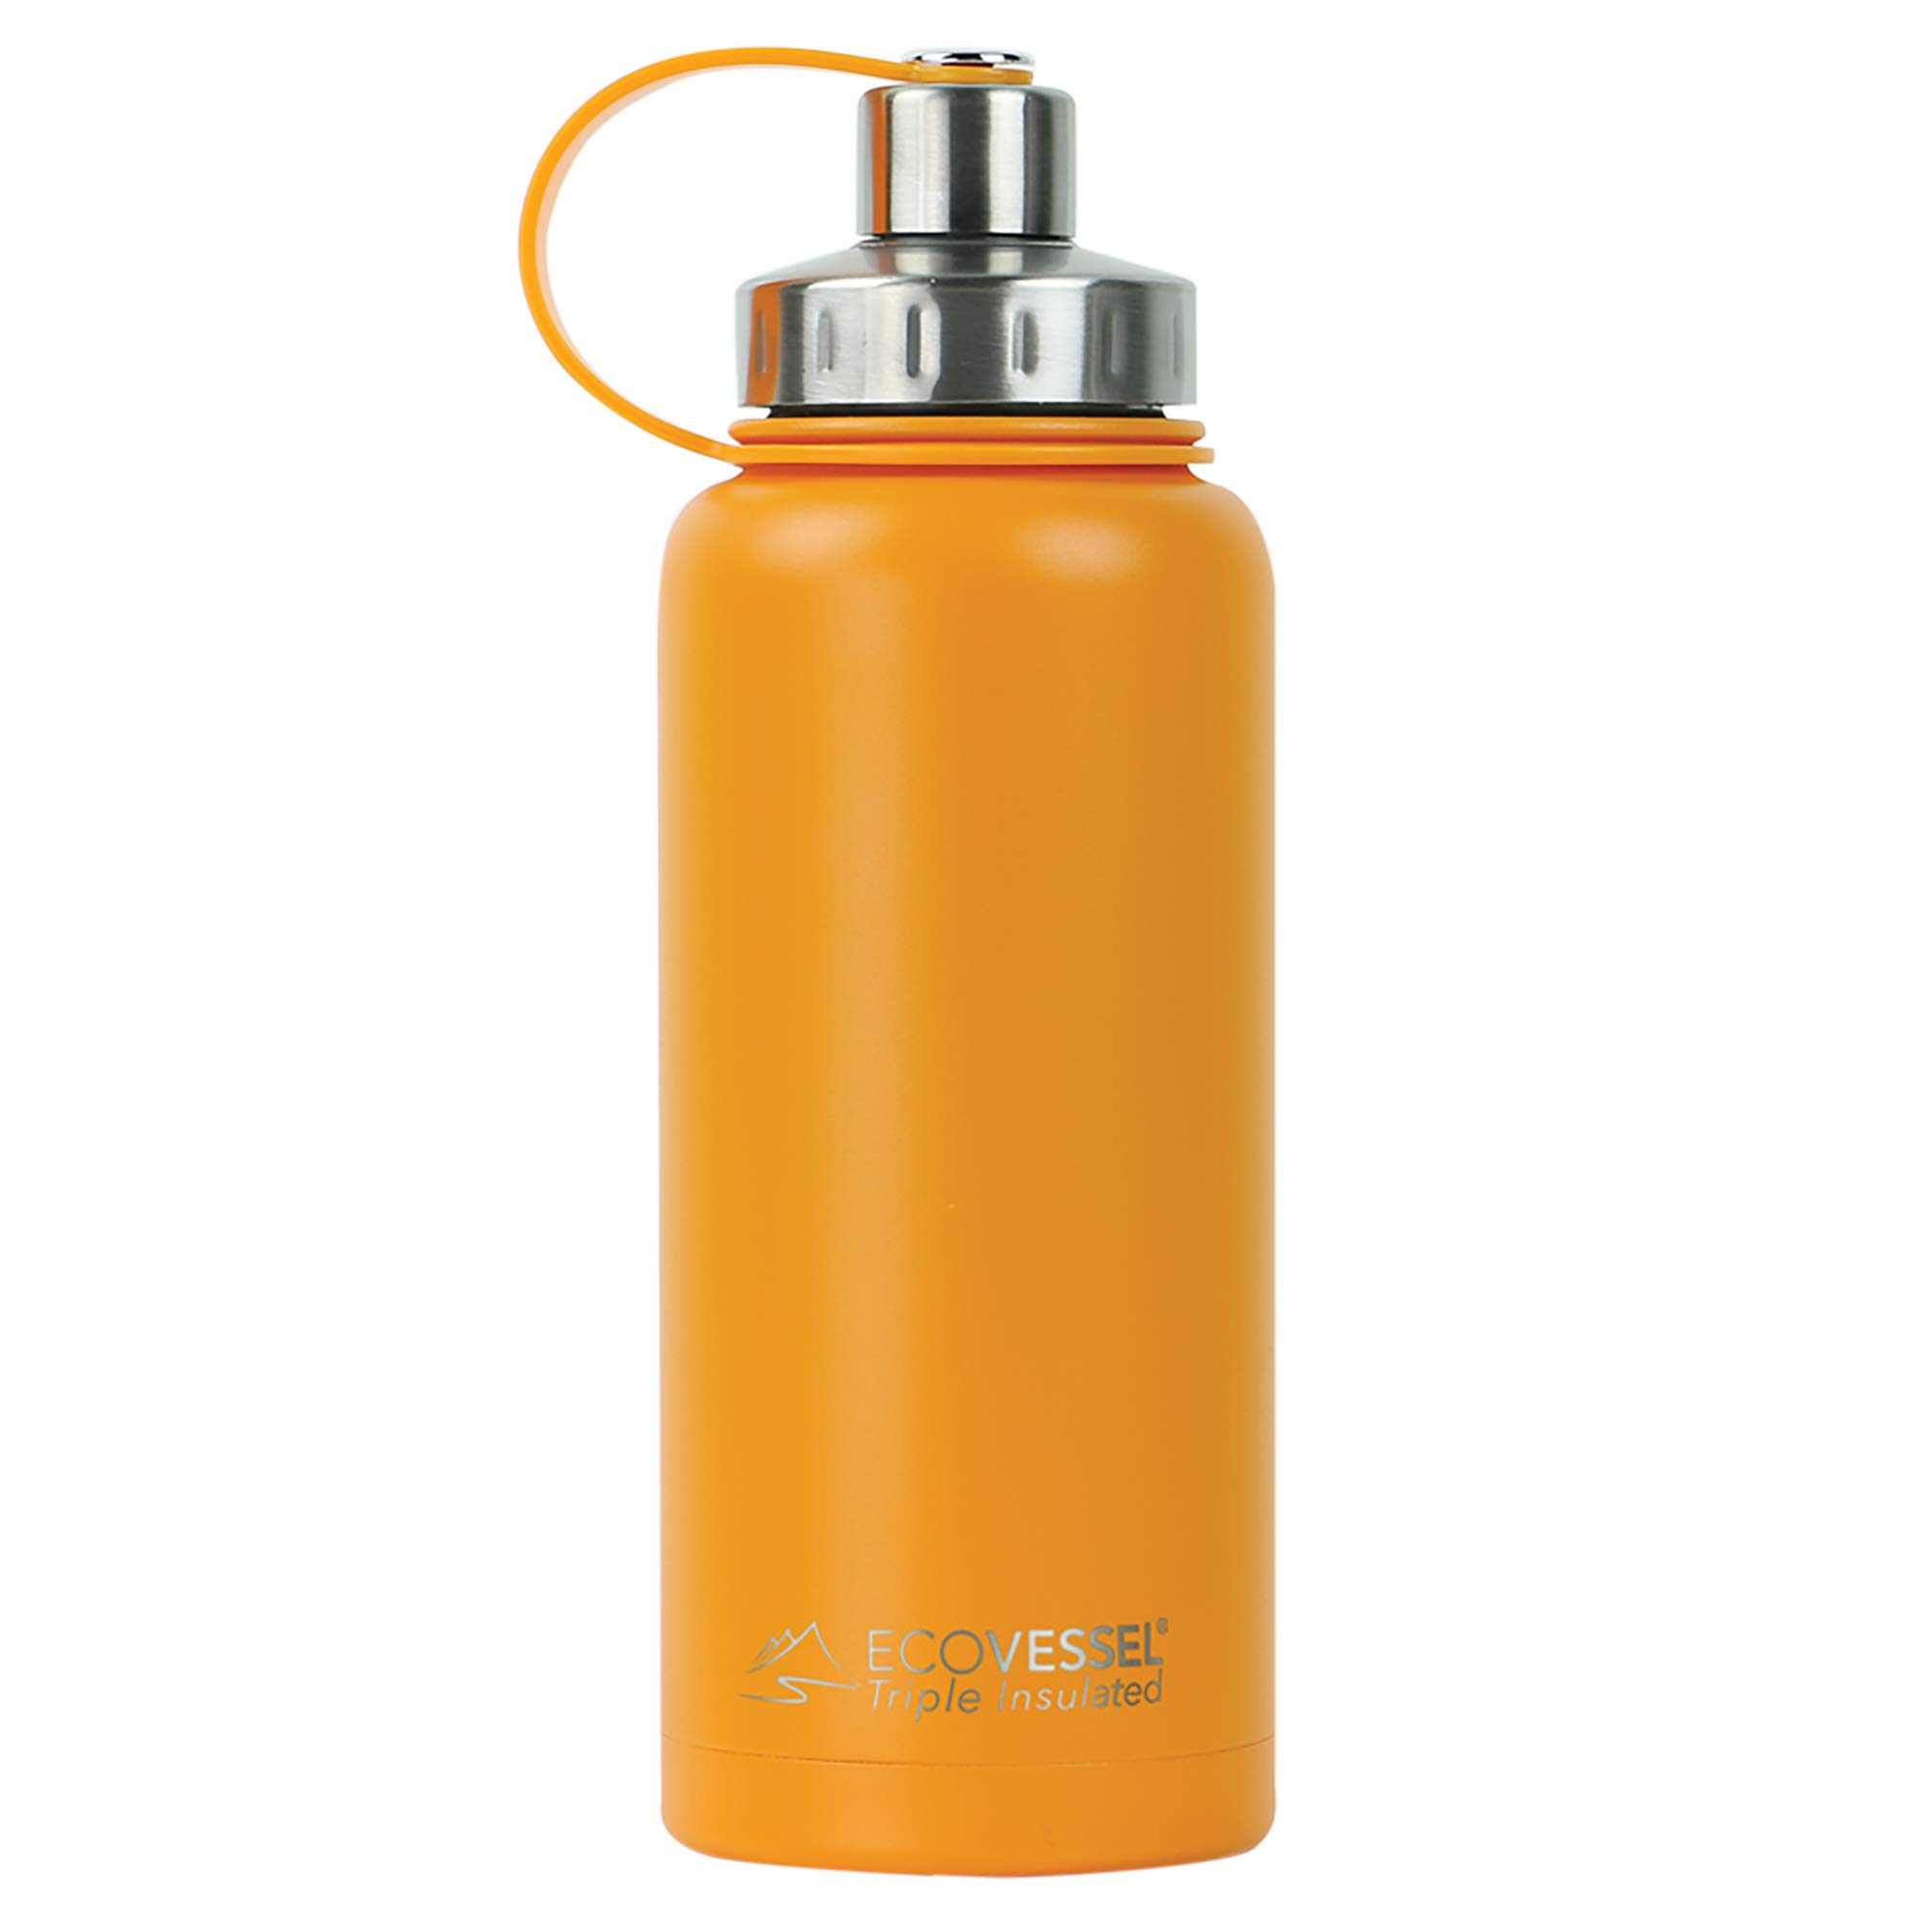 EcoVessel BOULDER TriMax Vacuum Insulated Stainless Steel Water Bottle with Versatile Stainless Steel Top and Tea, Fruit, Ice Strainer - 32 ounce - Mystic Mango